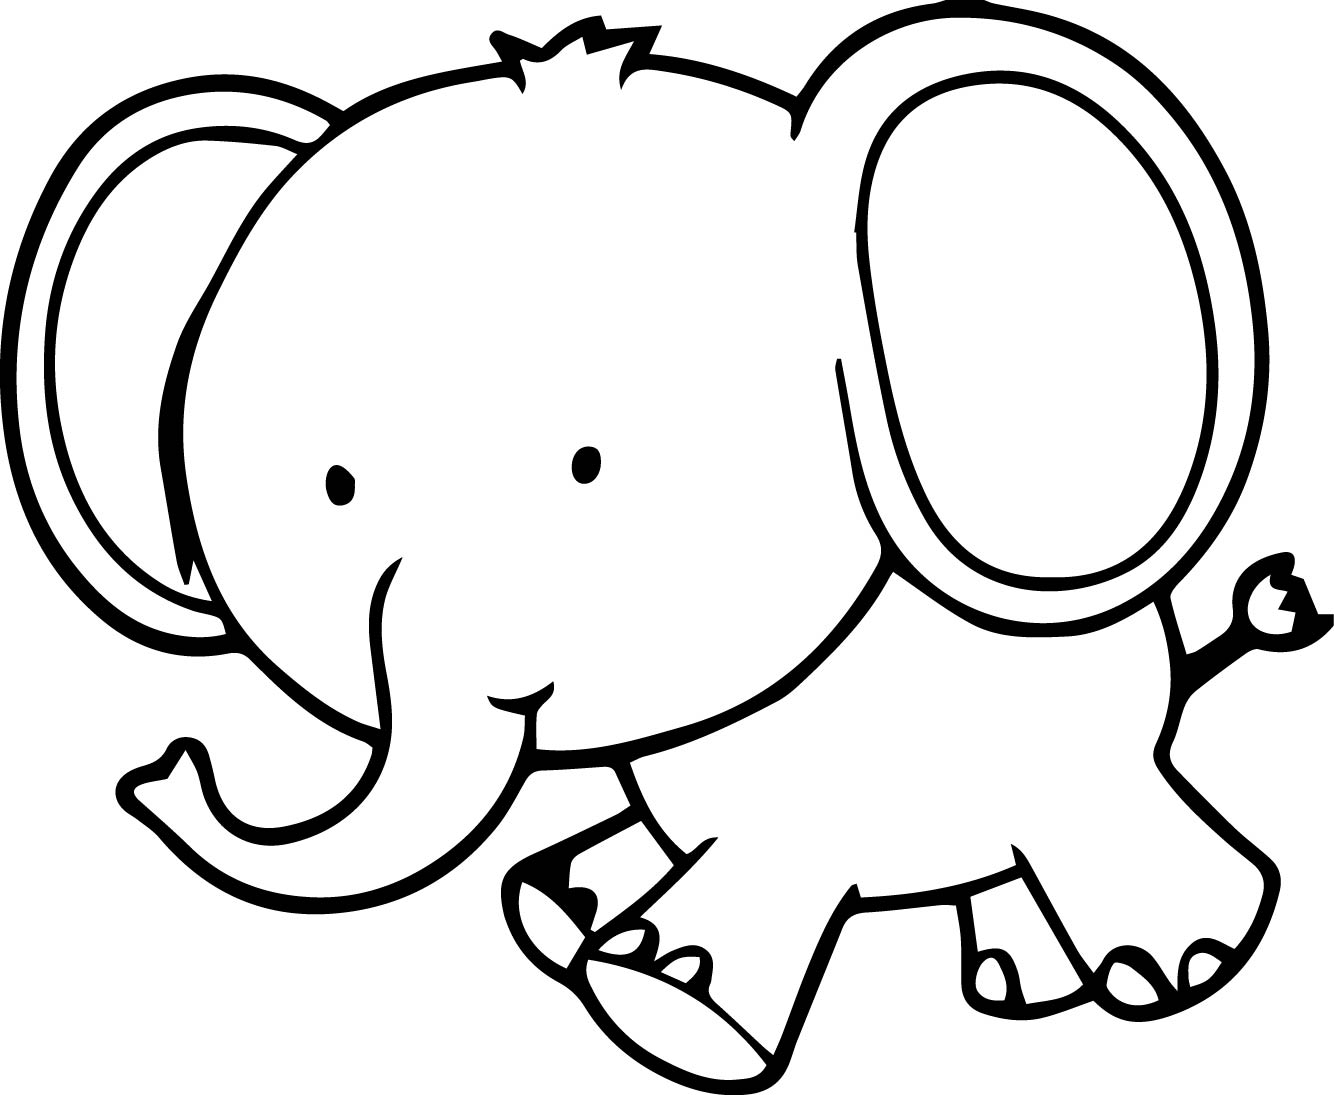 elephant for coloring elephant coloring pages free download on clipartmag for elephant coloring